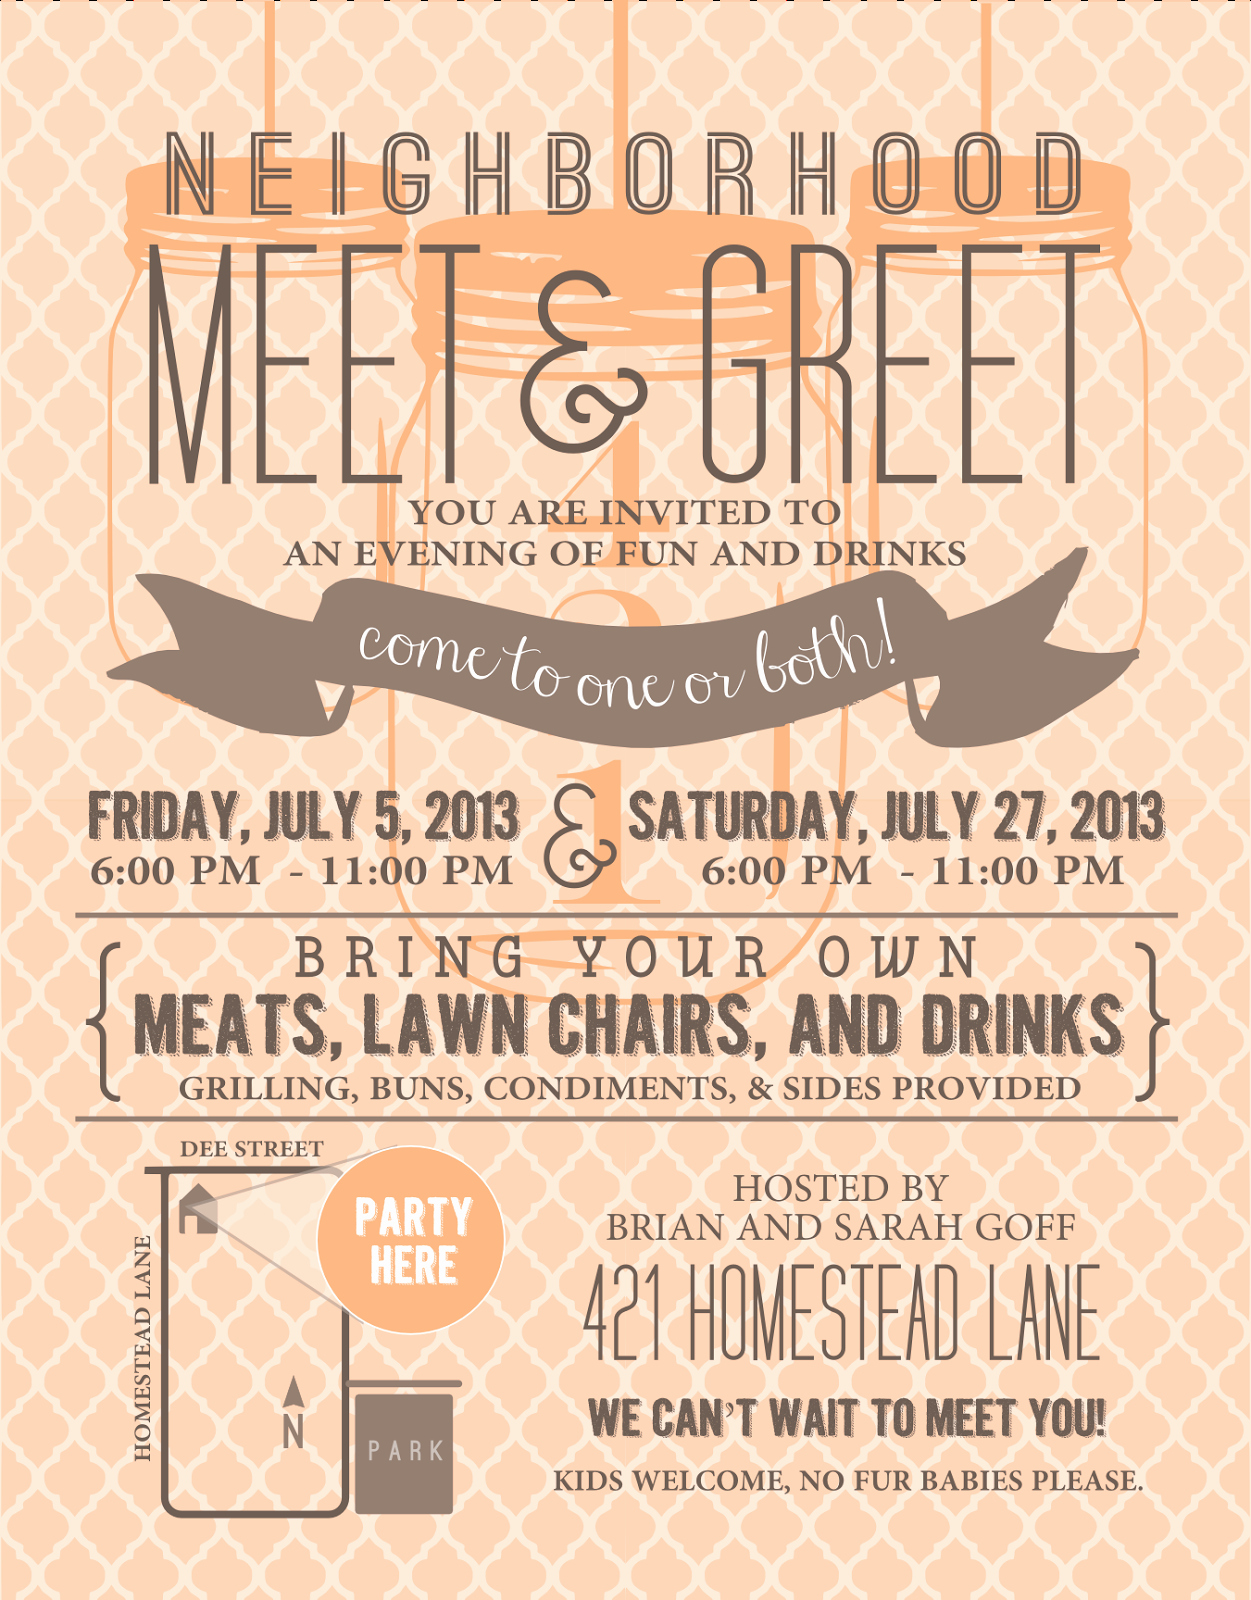 Welcome to the Neighborhood Letter From Business Luxury Signatures by Sarah Meet N Greet Party Invitation and